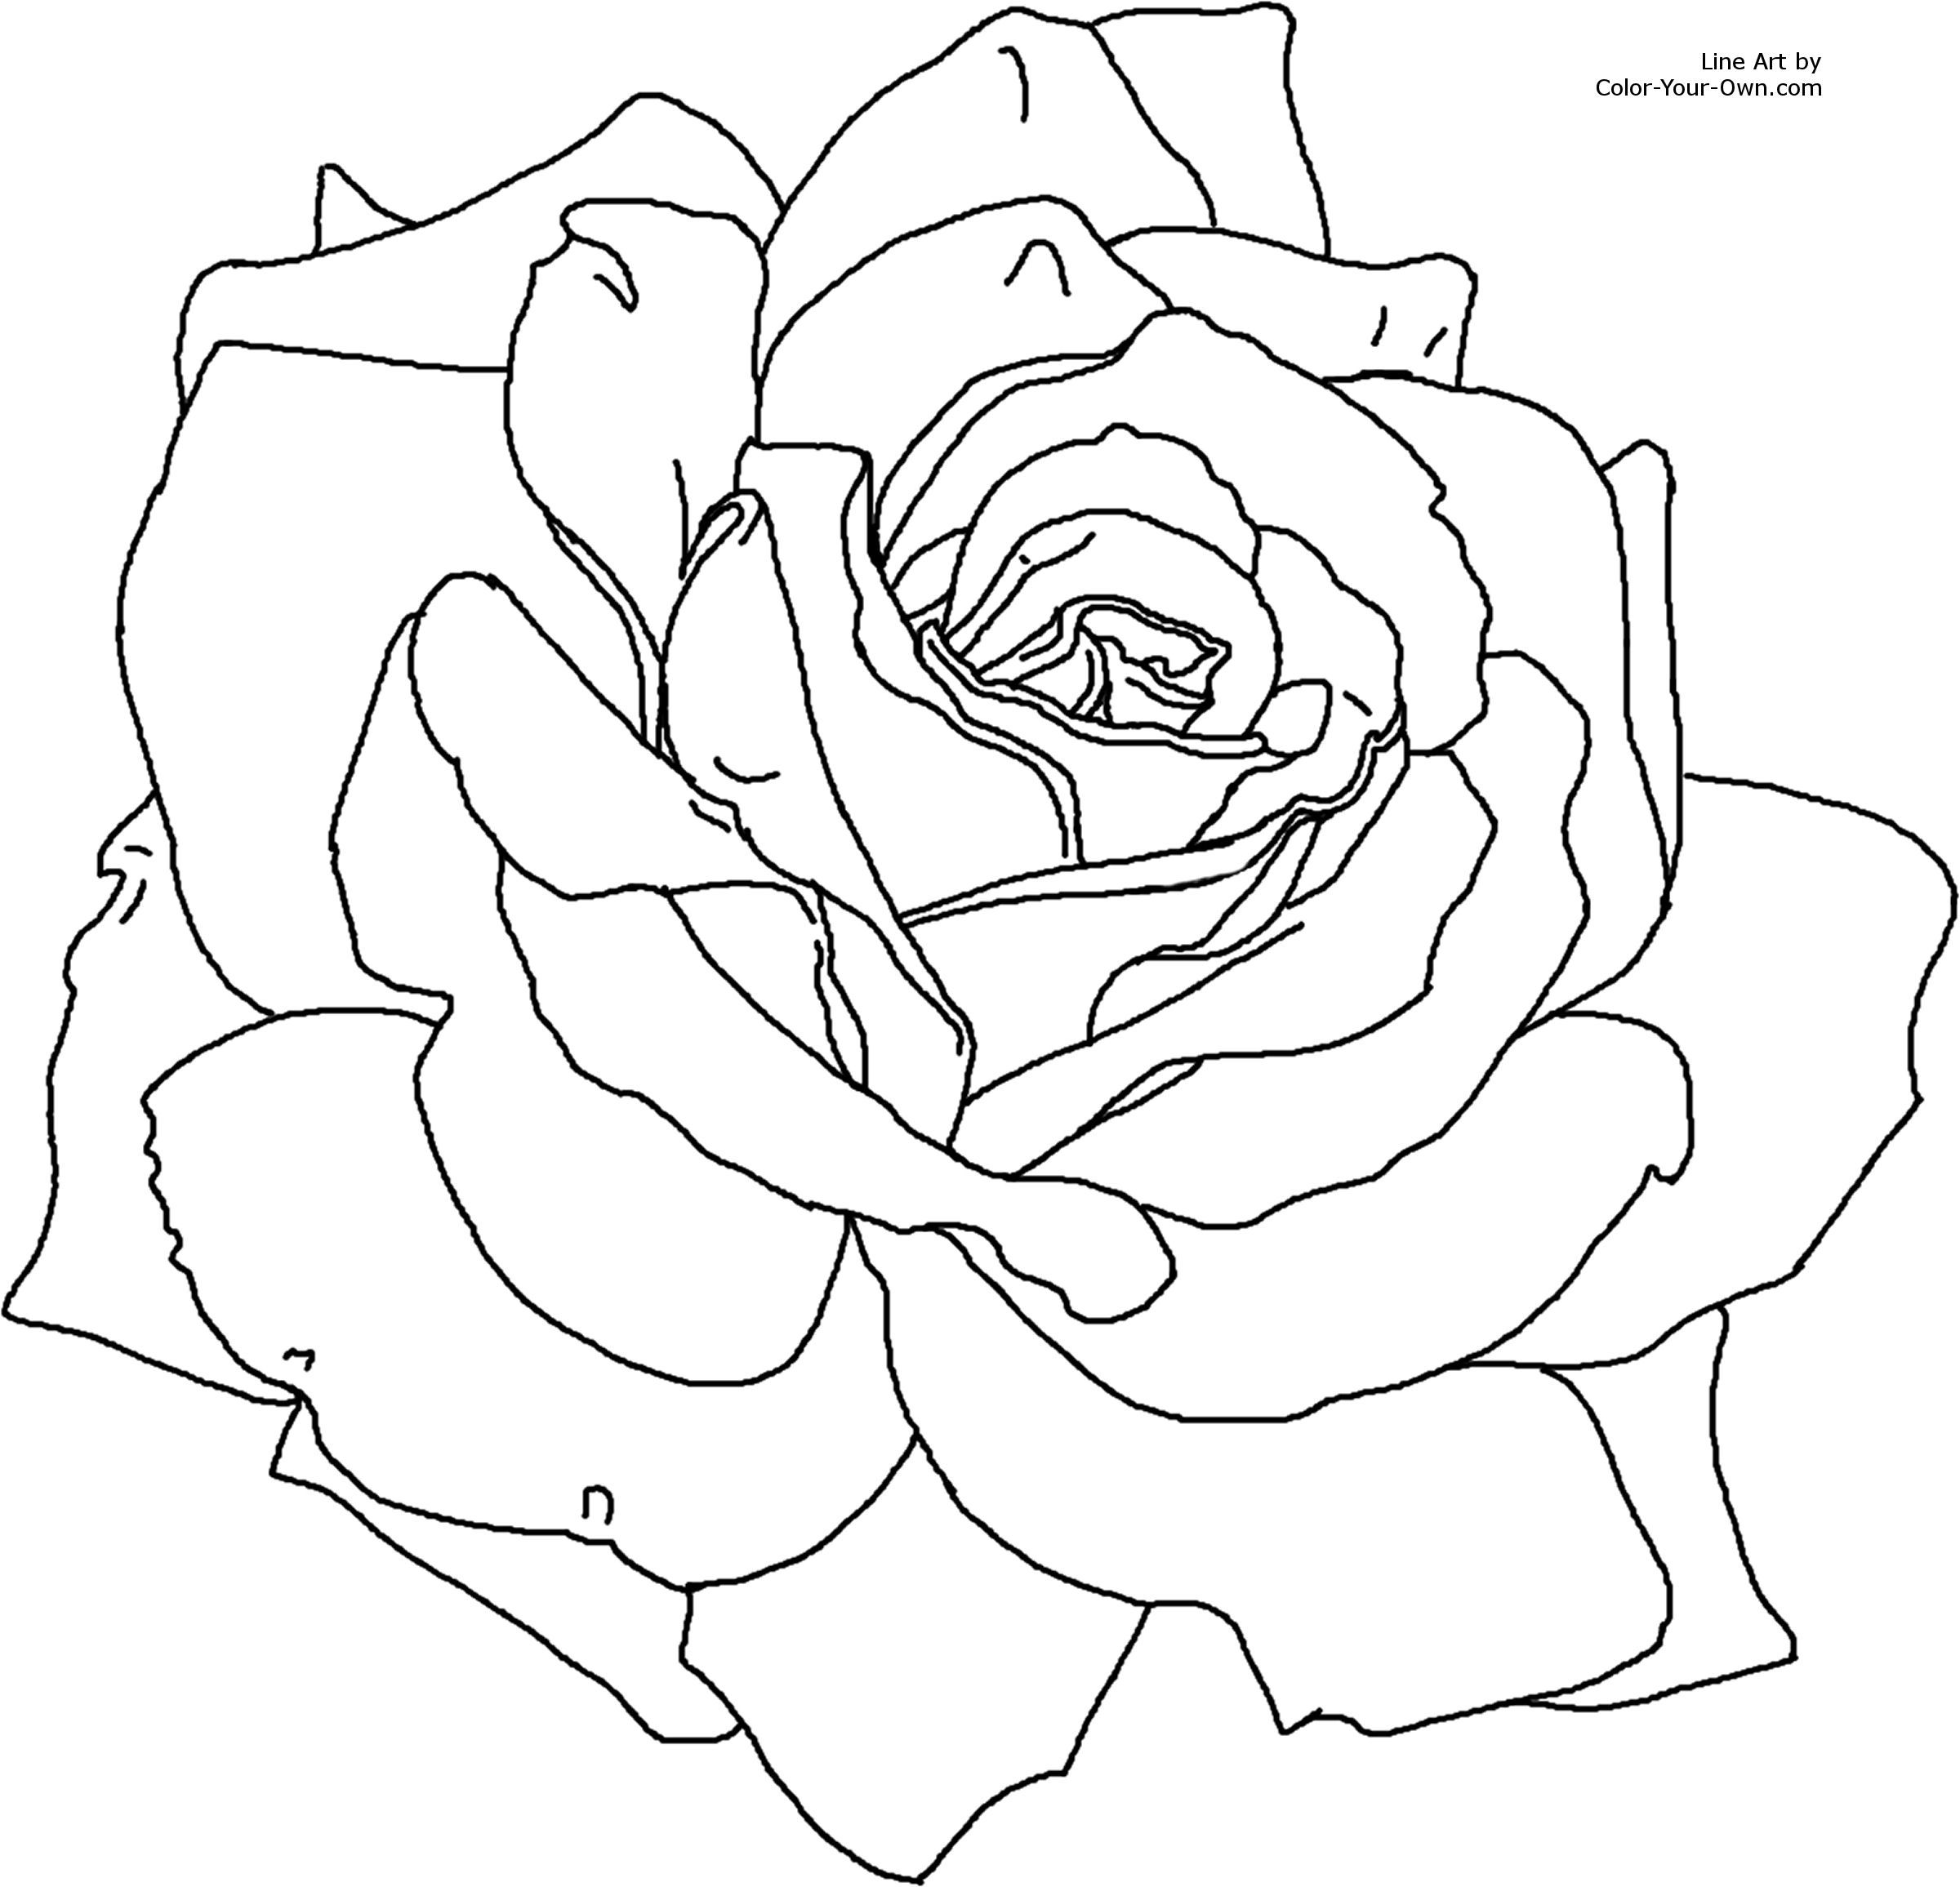 flower Page Printable Coloring Sheets | For the 11.11 x 11 printable ...